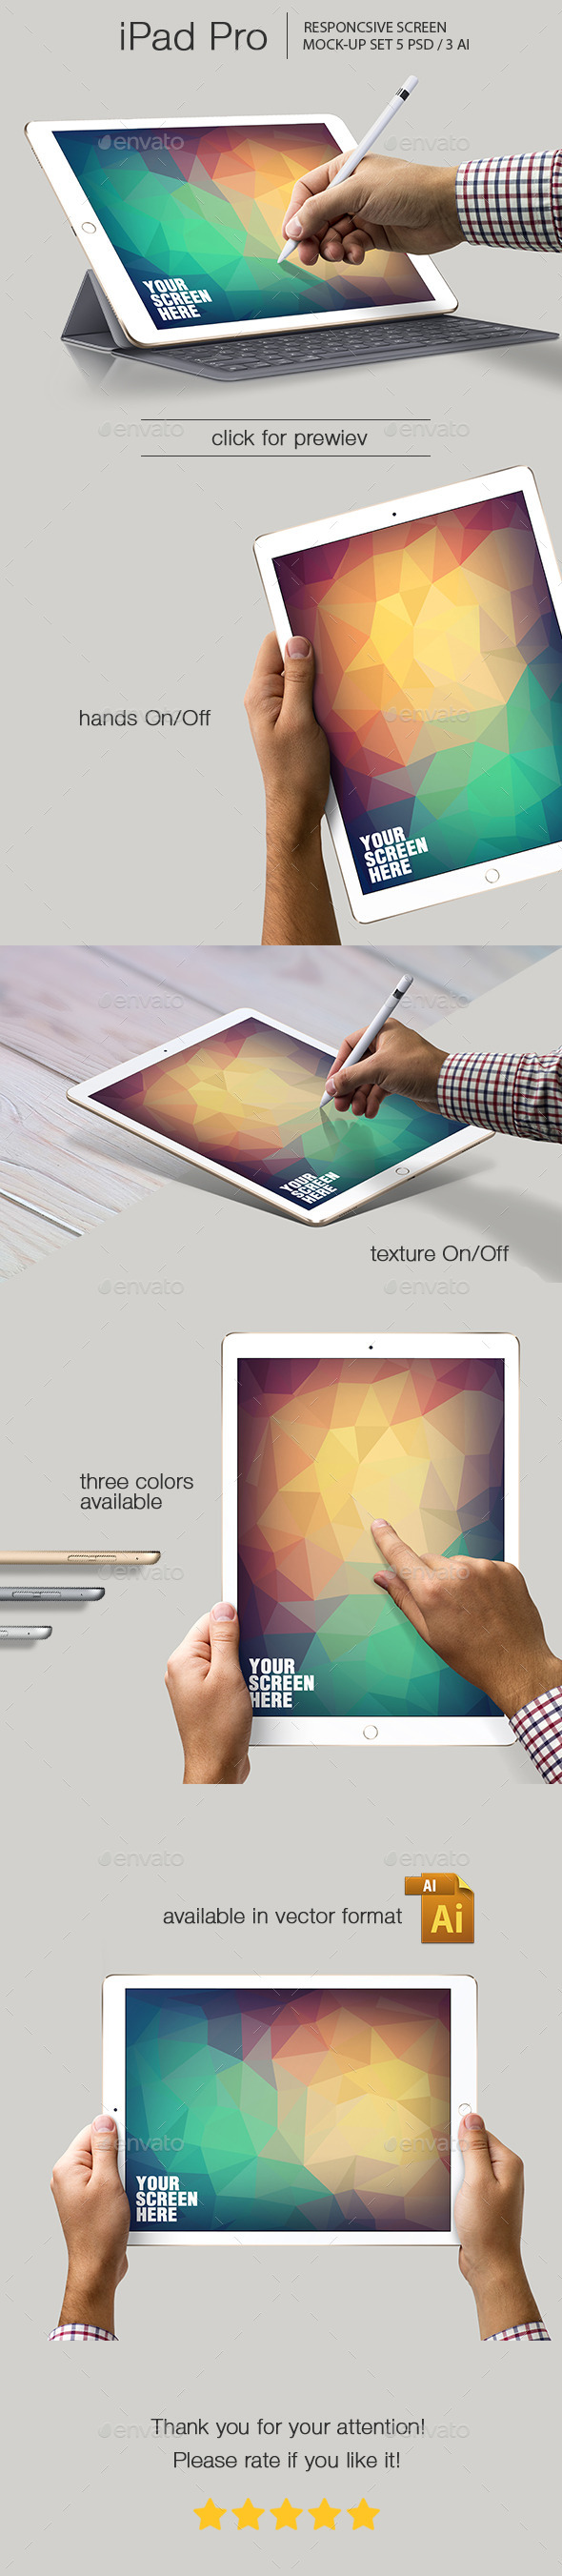 iPad Pro Responsive Mockup - Mobile Displays